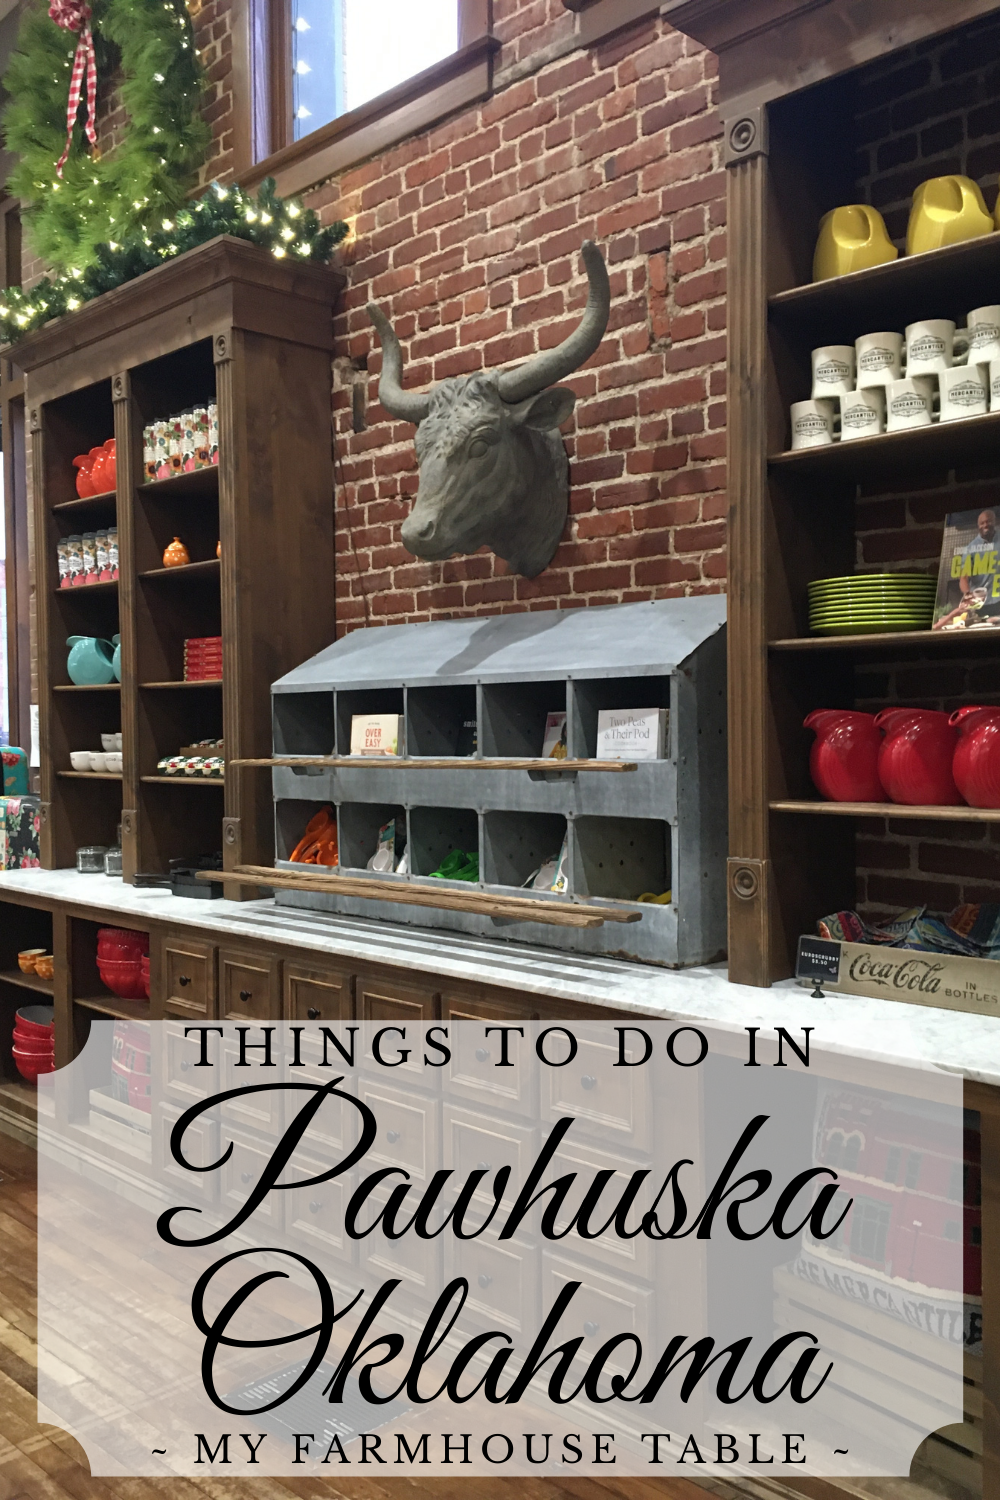 Things to Do In Pawhuska Oklahoma Home of The Pioneer Woman Boarding House Lodge The Mercantile Osage County Where to Stay, Shop, and Eat Cowboy Country Christmas in Pawhuska Girls Weekend Road Trip Best Friend My Farmhouse Table